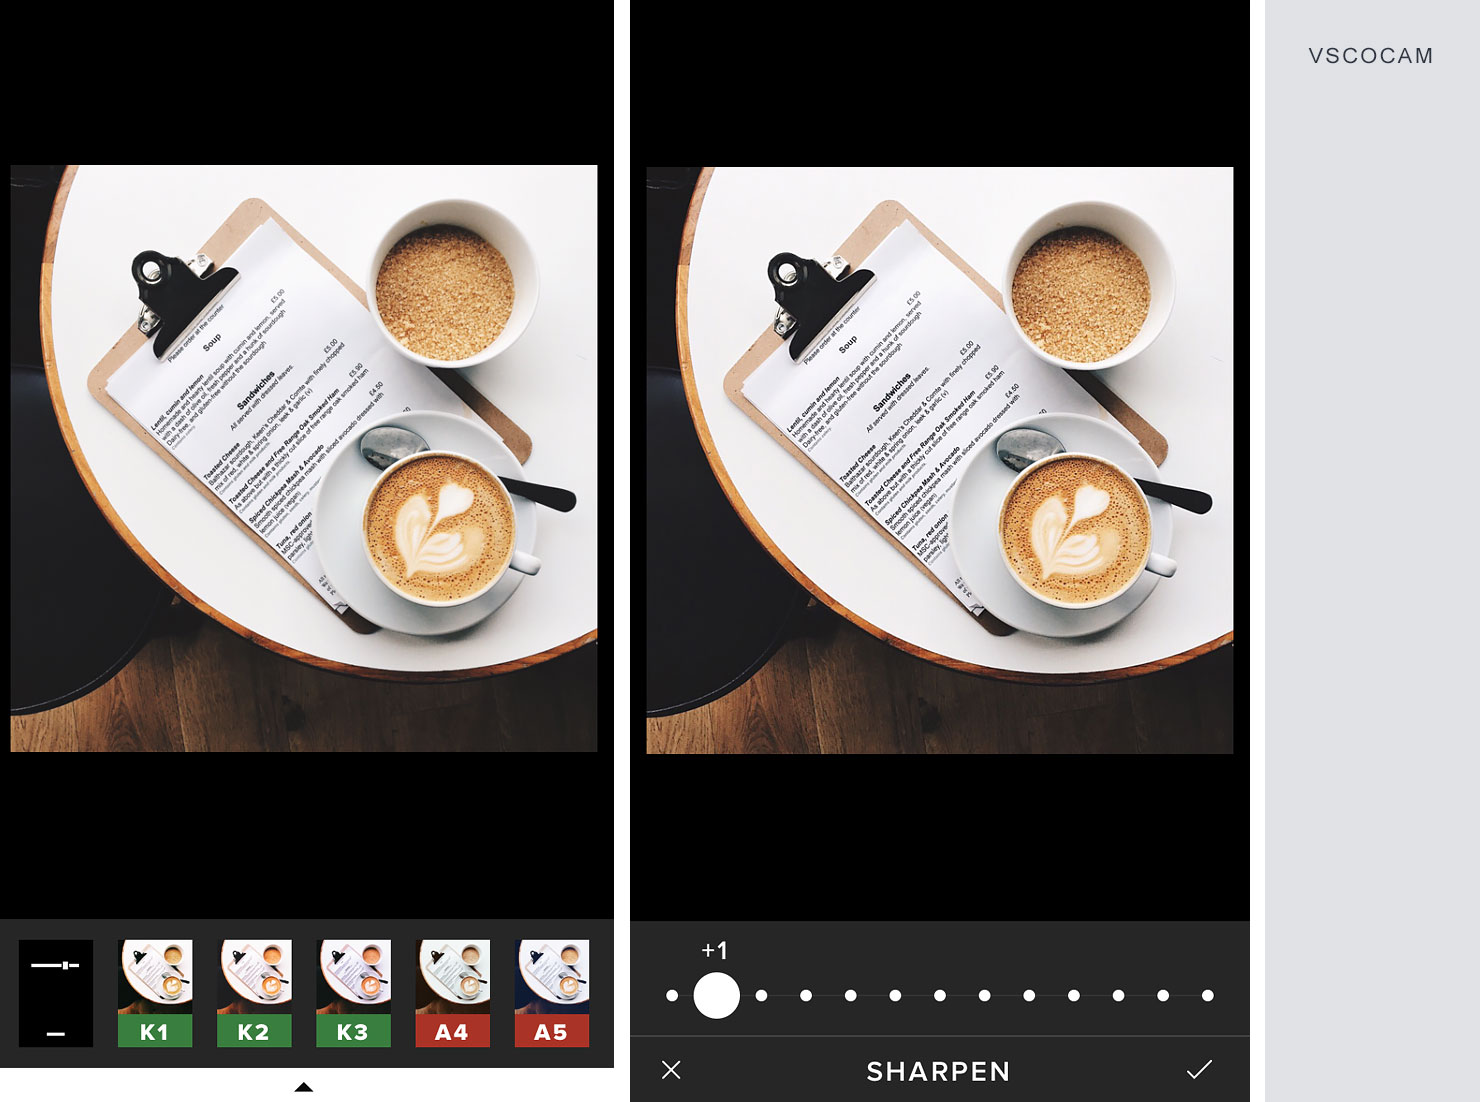 iphone favorites photo how to search on iphoto